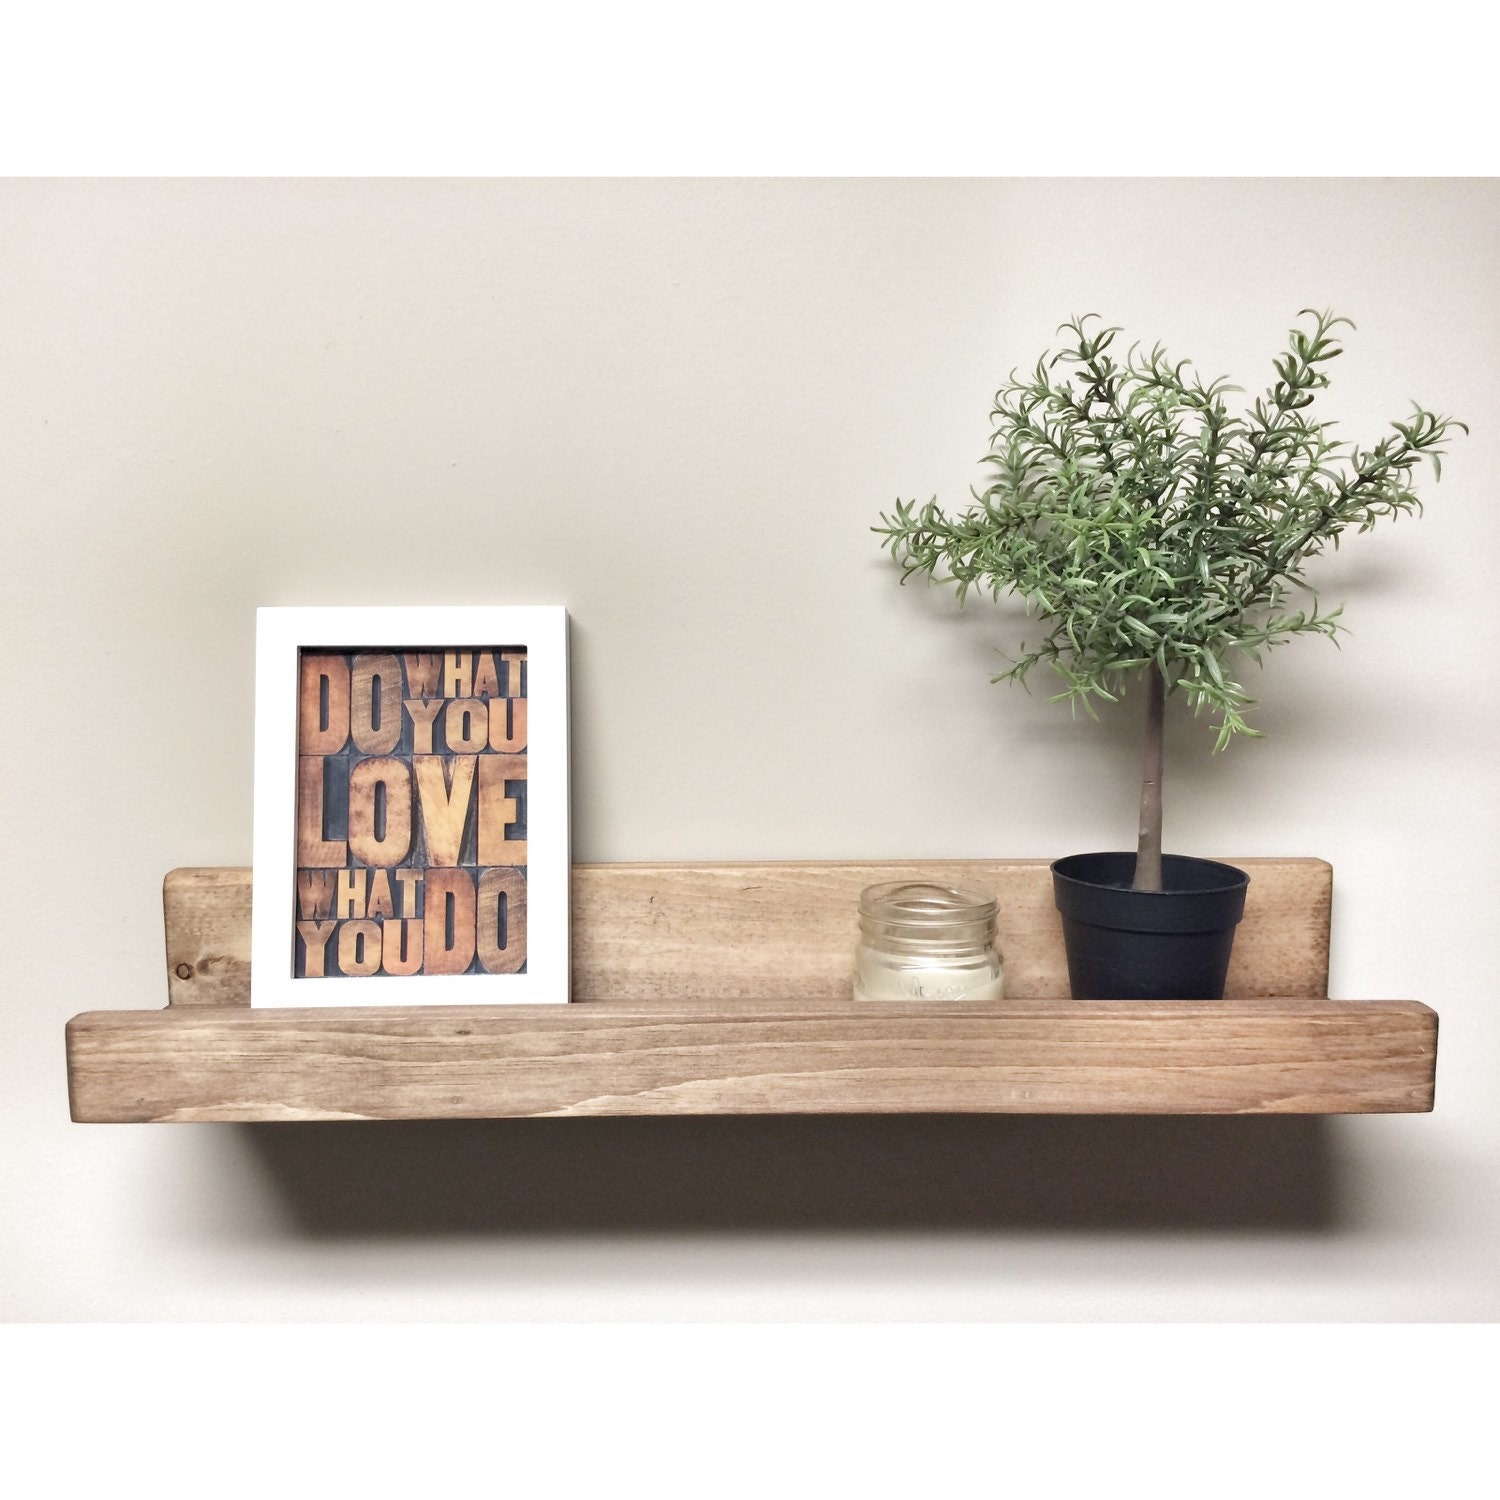 Inject Warmth Into Your Home With Reclaimed Wood Wall: Rustic Wooden Picture Ledge Shelf, Gallery Wall Shelf